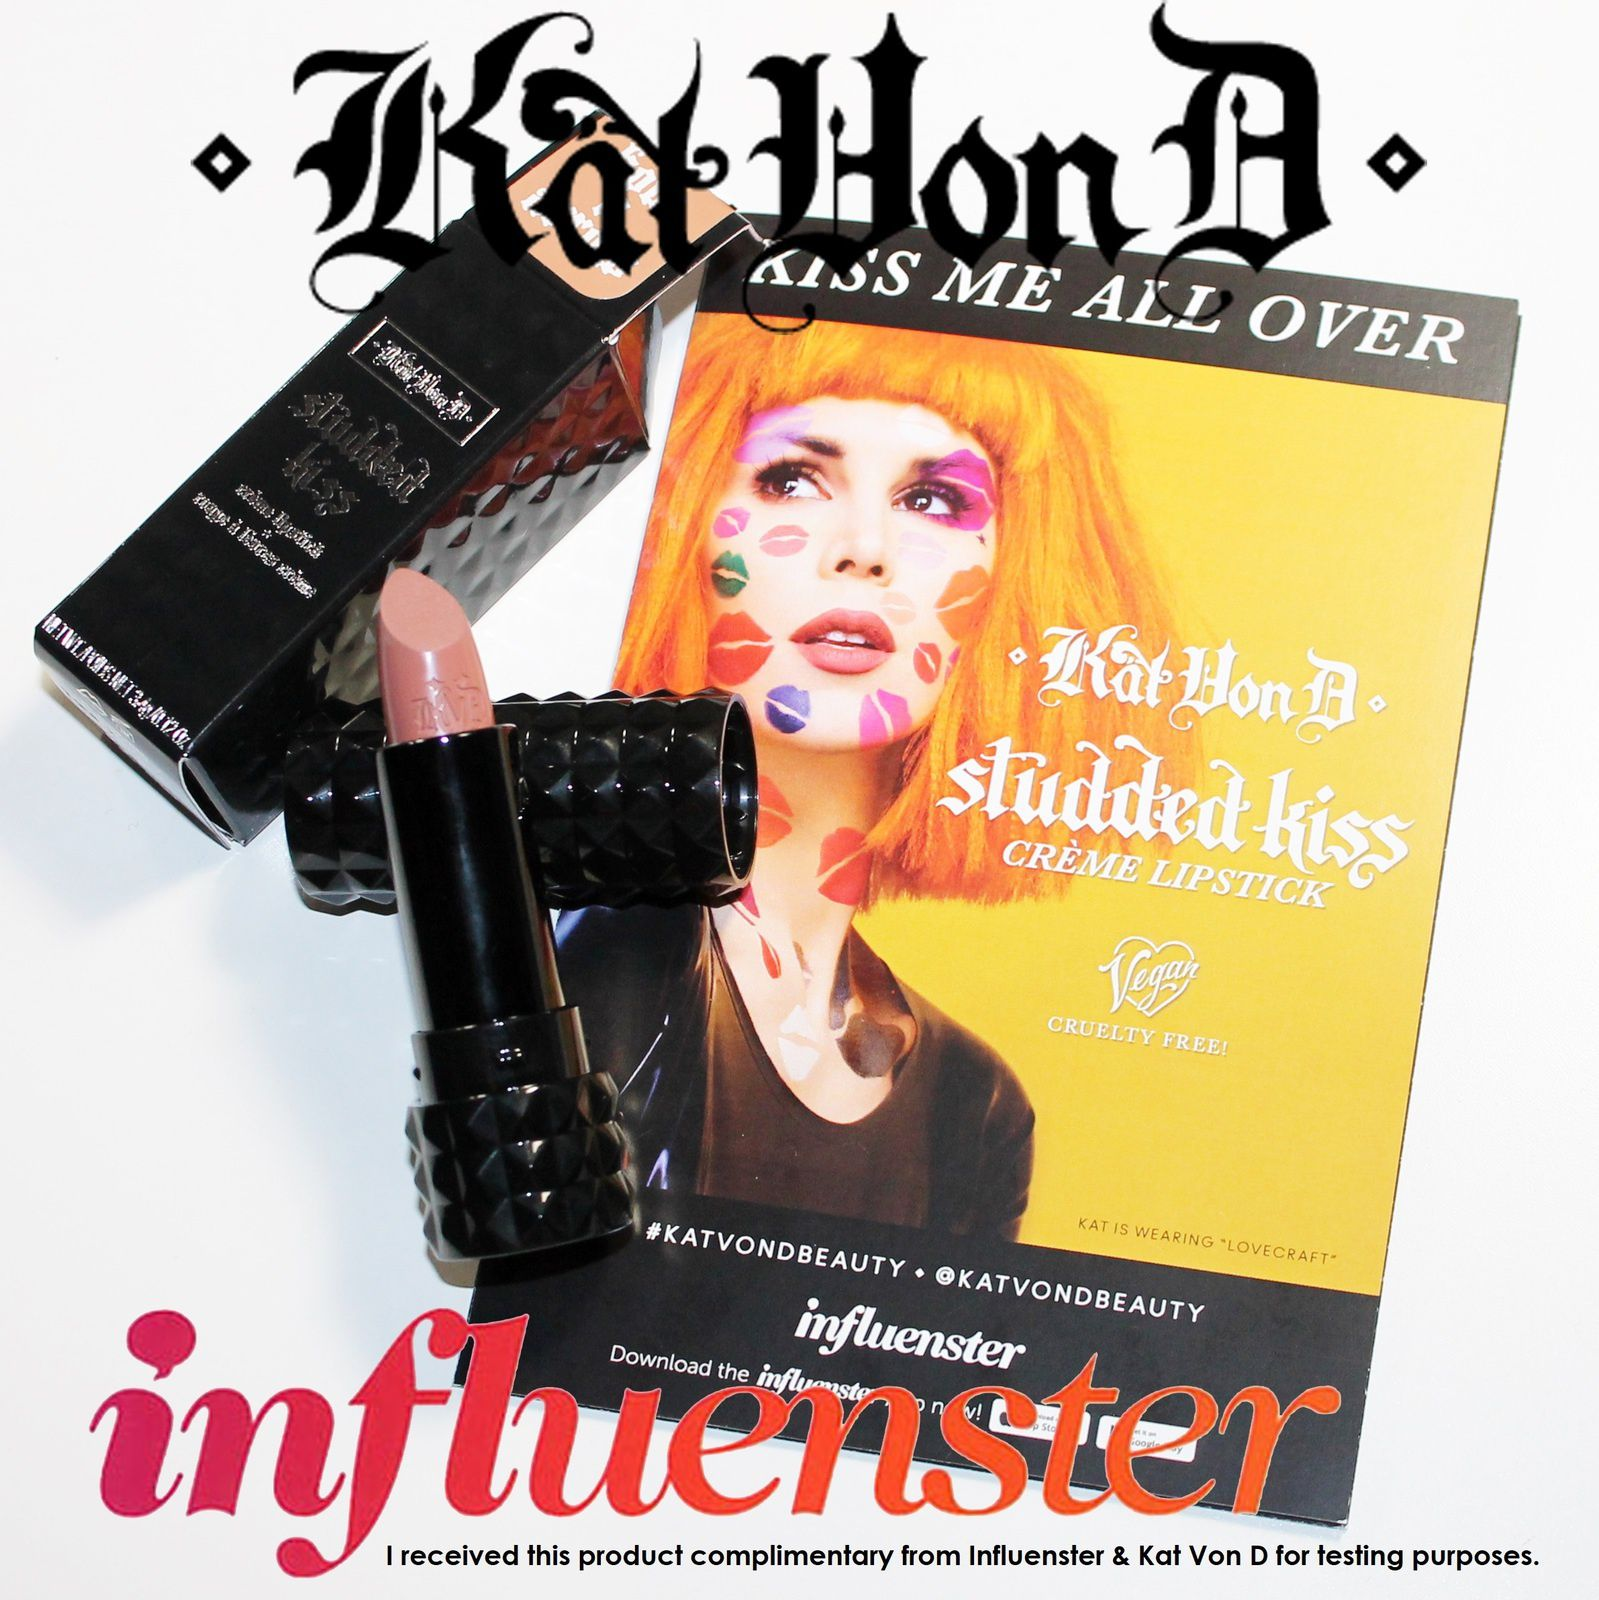 I received this product complimentary from Influenster & Kat Von D for testing purposes.